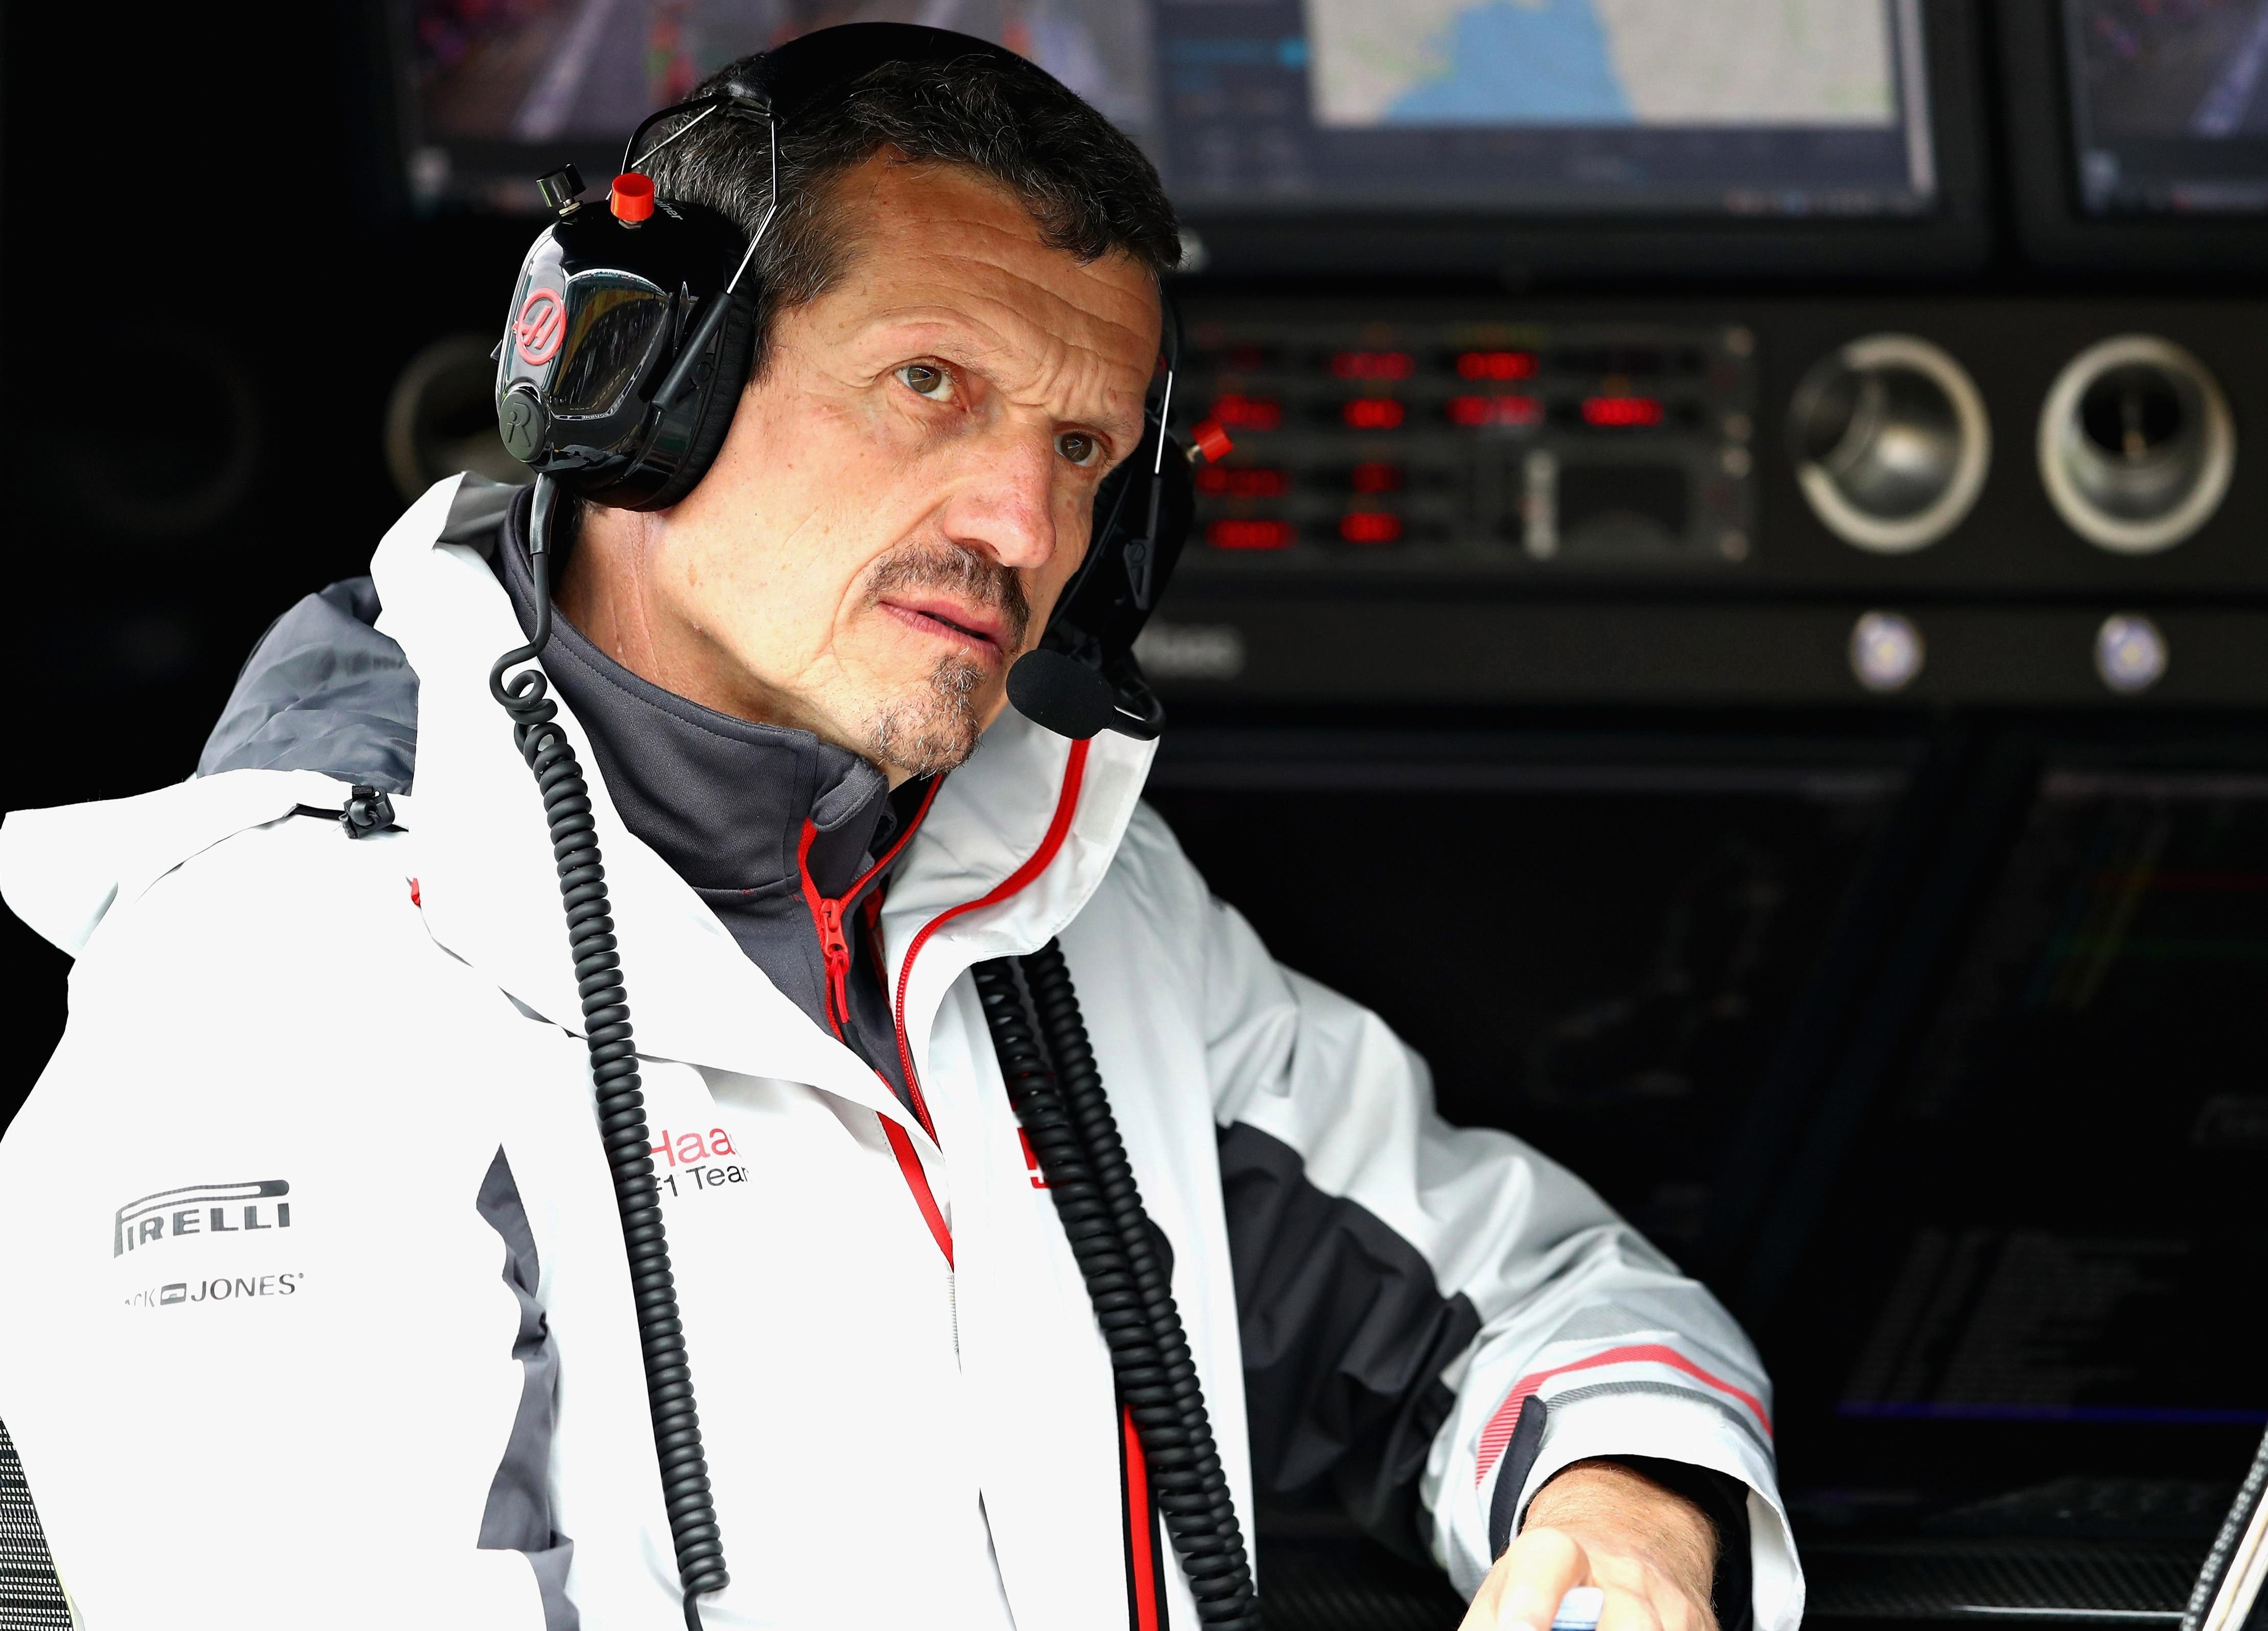 Haas boss Guenther Steiner says the team are not doing anything illegal